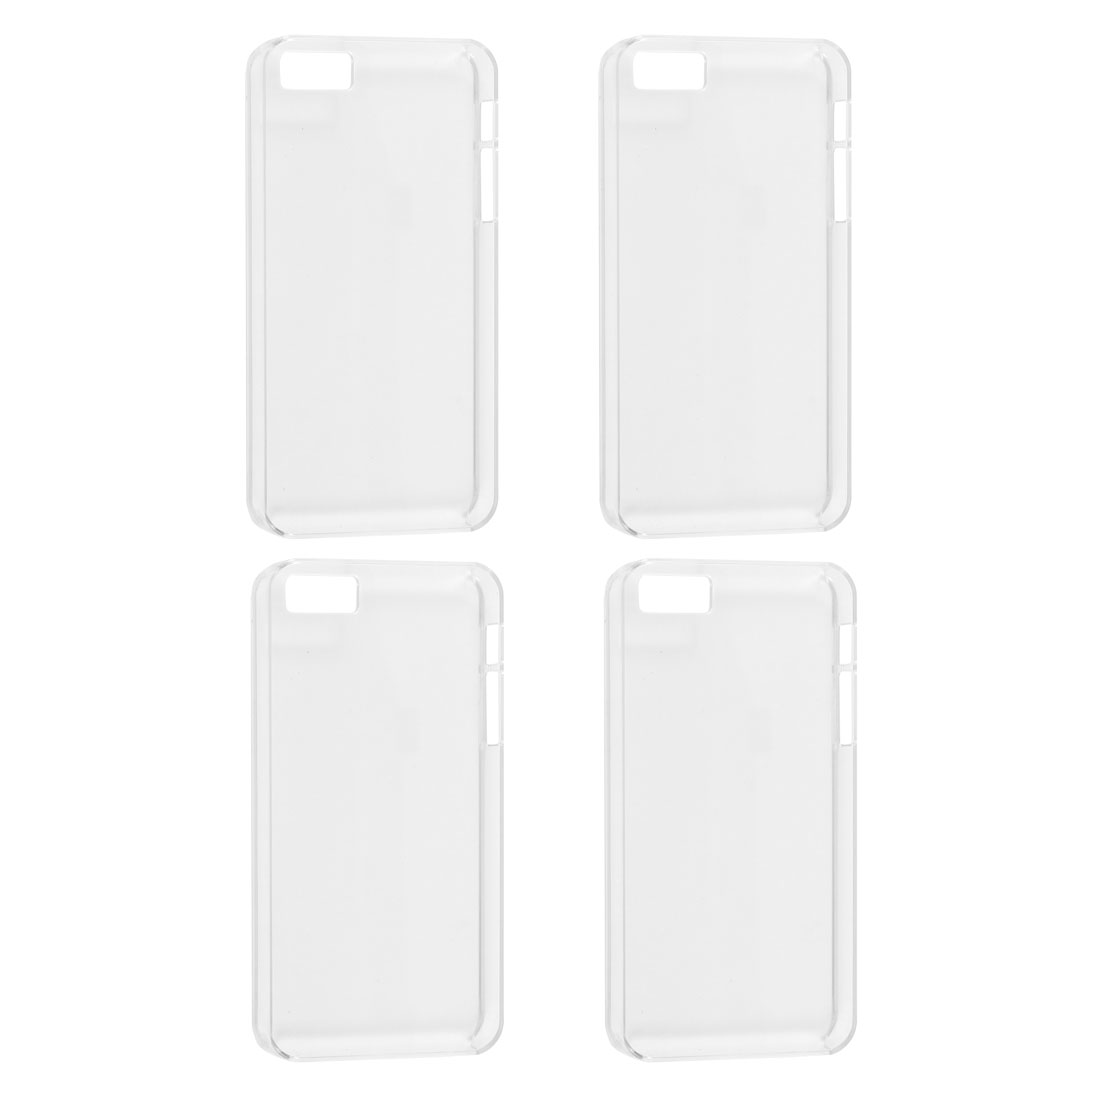 4 Pcs Clear Plastic Protector Shell Back Case Cover for iPhone 5 5G 5S